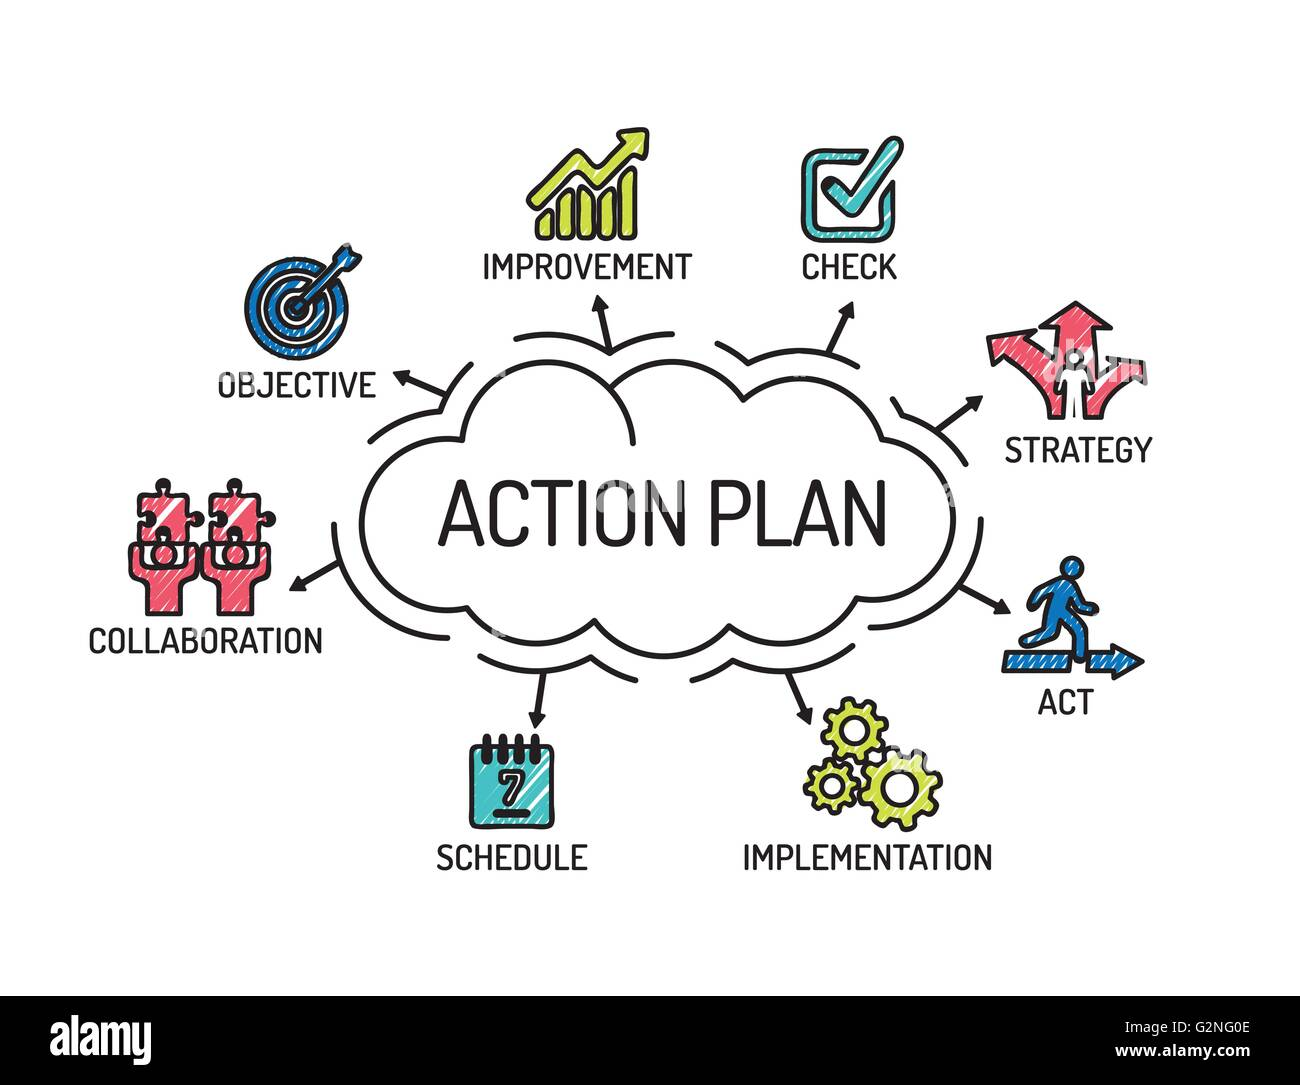 Action Plan Chart With Keywords And Icons Sketch Stock